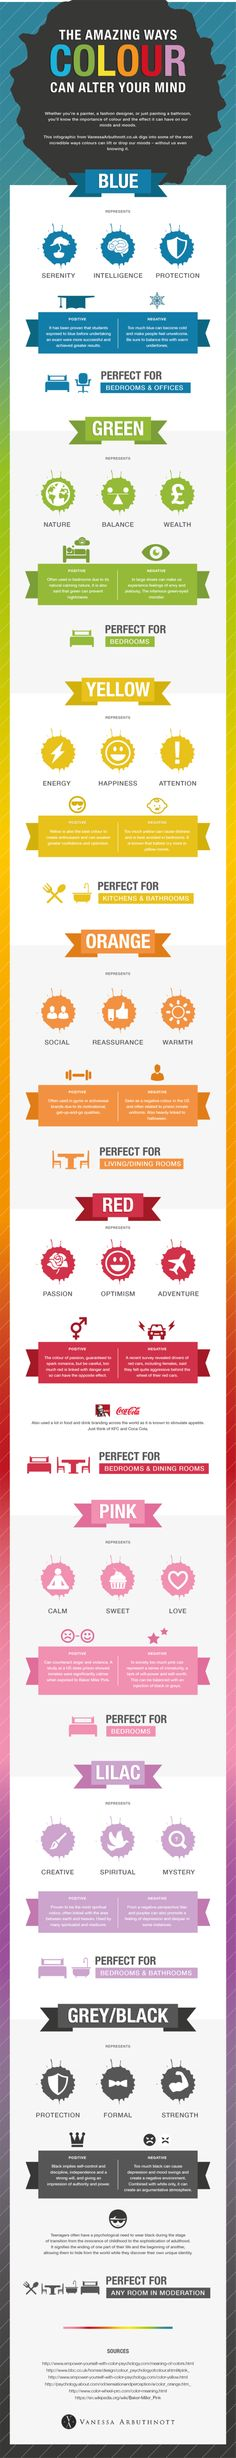 The Amazing Ways Colour Can Alter Your Mind - UltraLinx